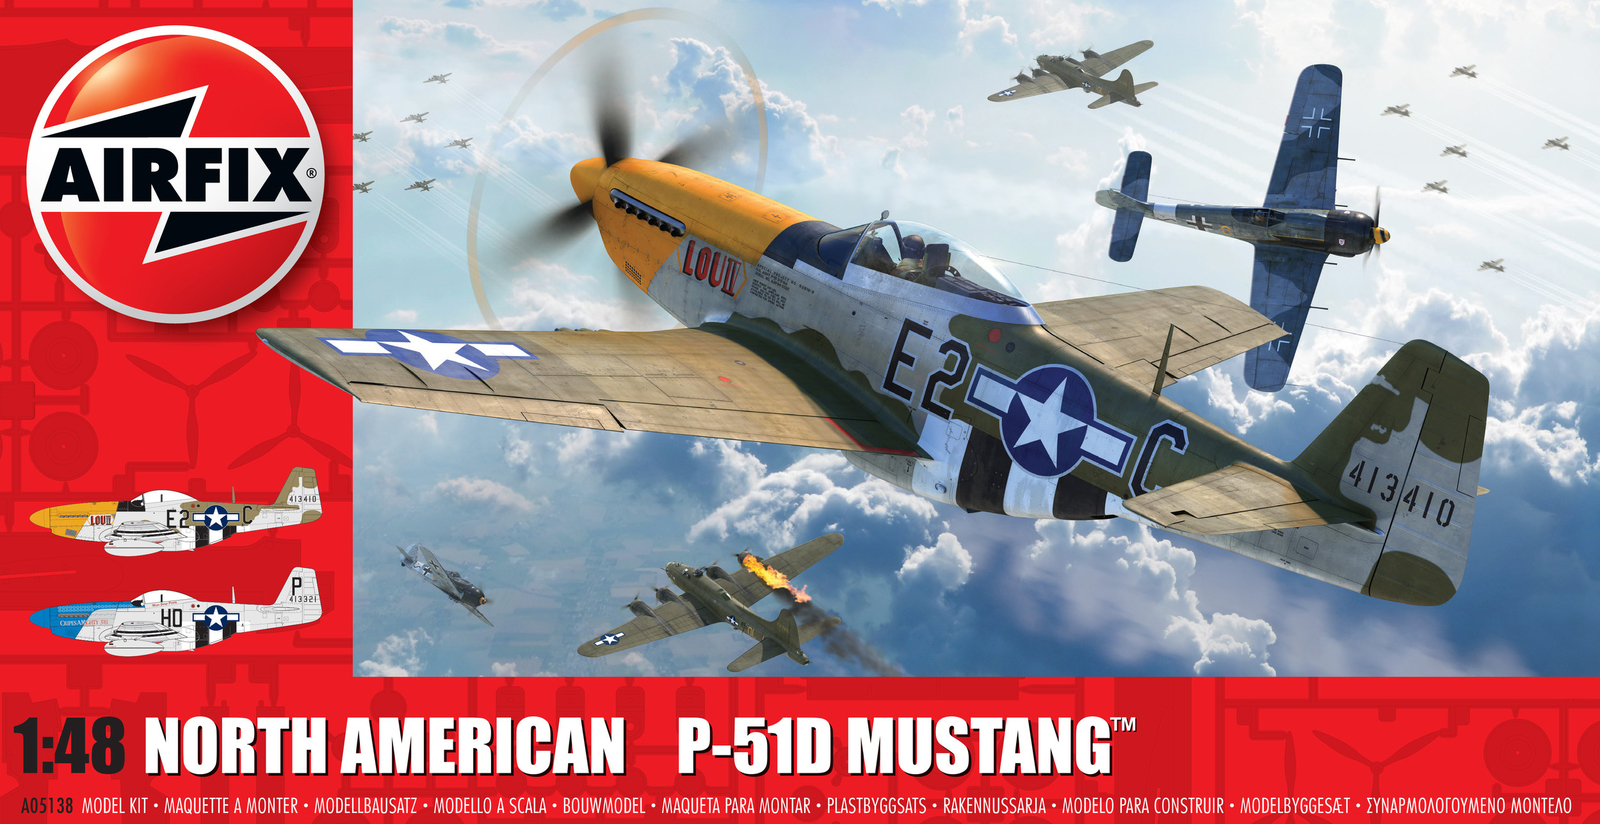 Airfix: 1:48 North American P-51D Mustang (Filletless Tails) image